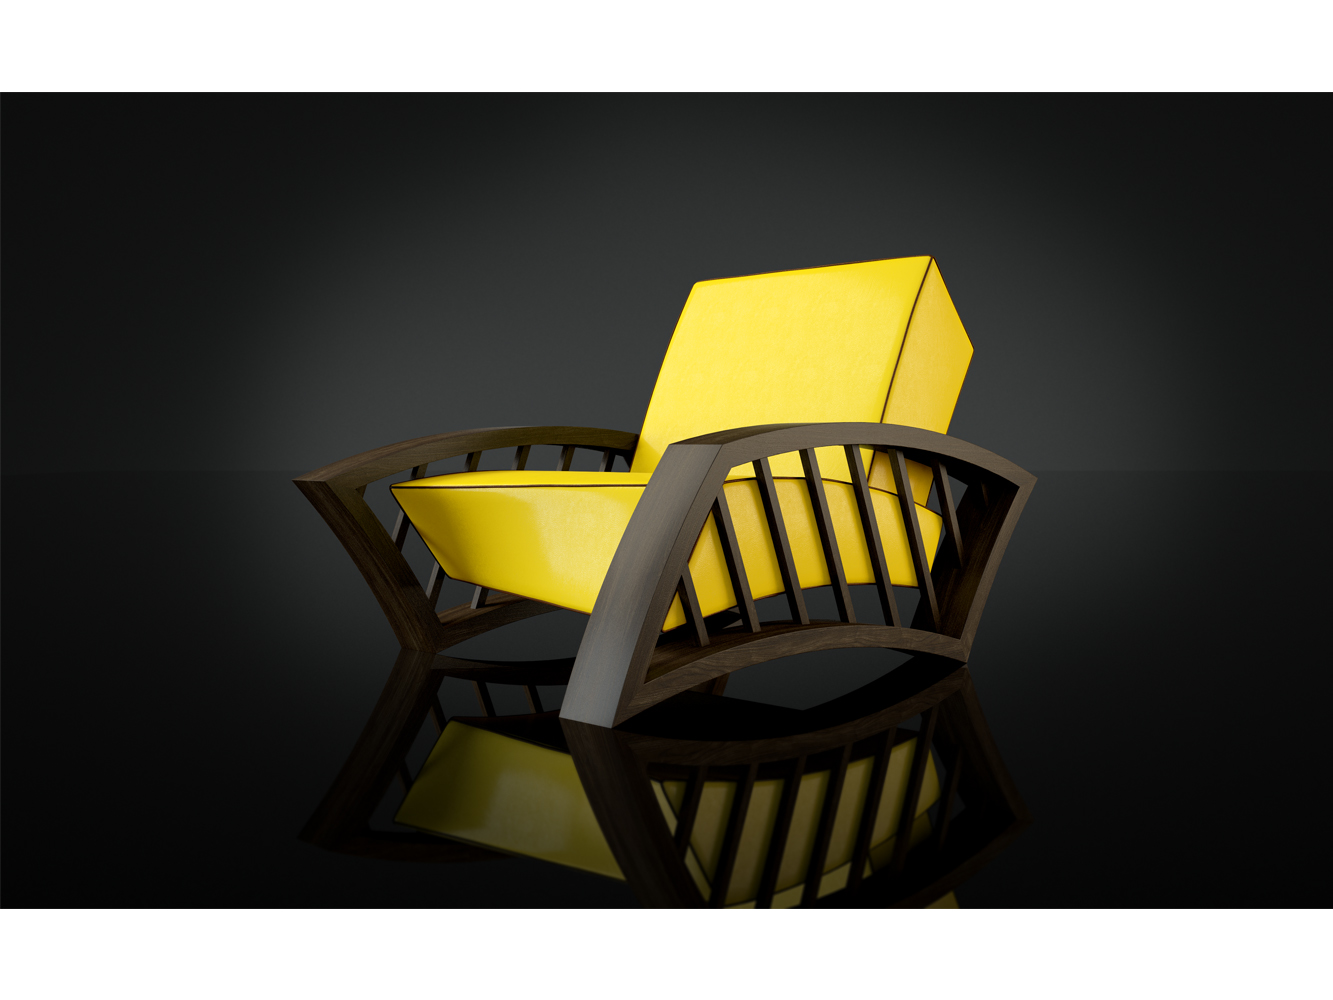 pix-us-cg-yellow-chair